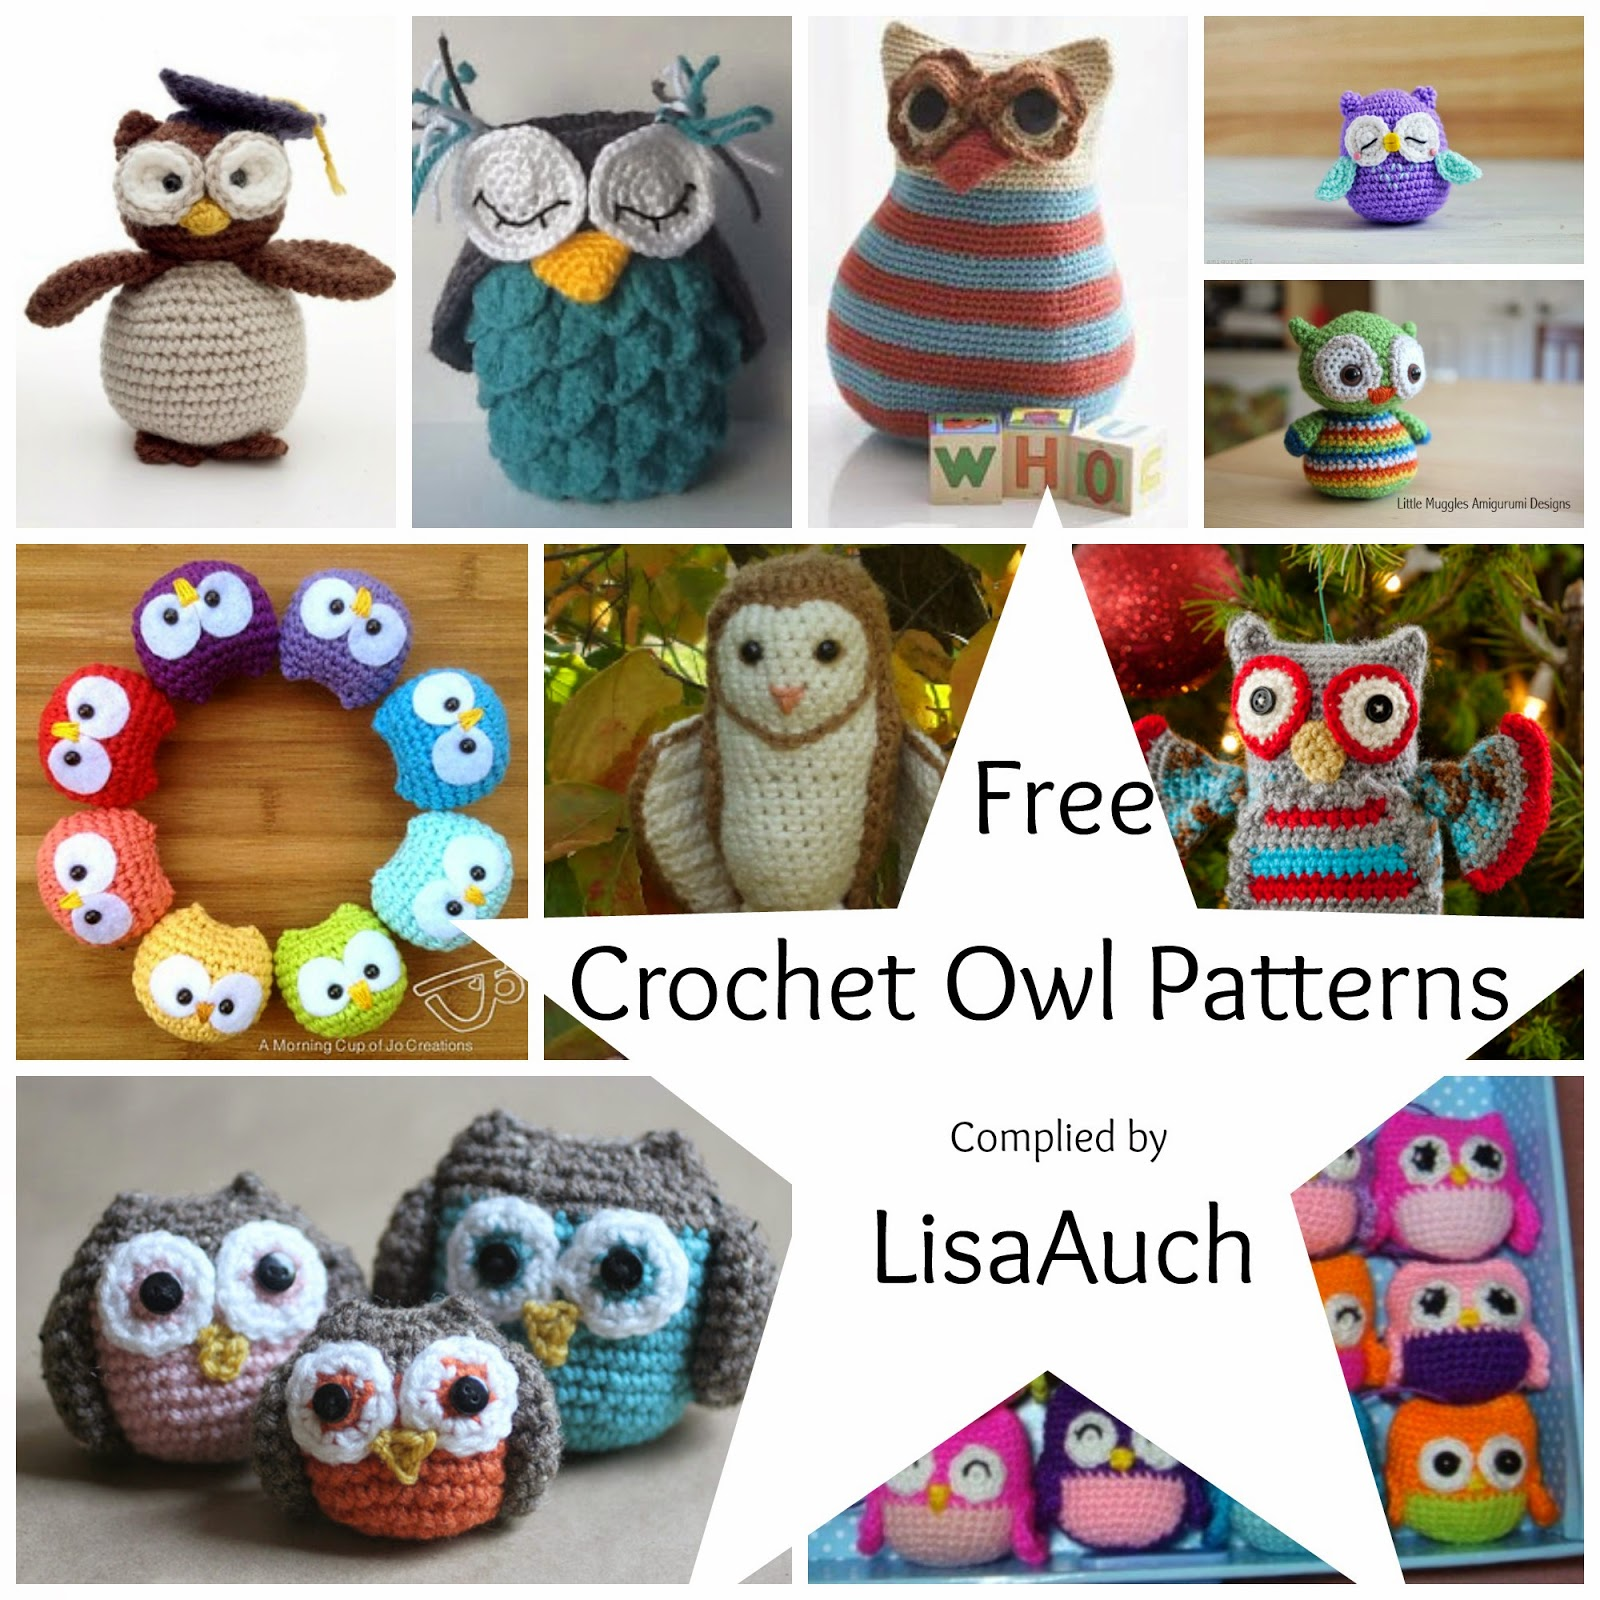 Amigurumi Owl Crochet Patterns Free : Free Crochet Owl Patterns FREE Crochet Patterns Bloglovin